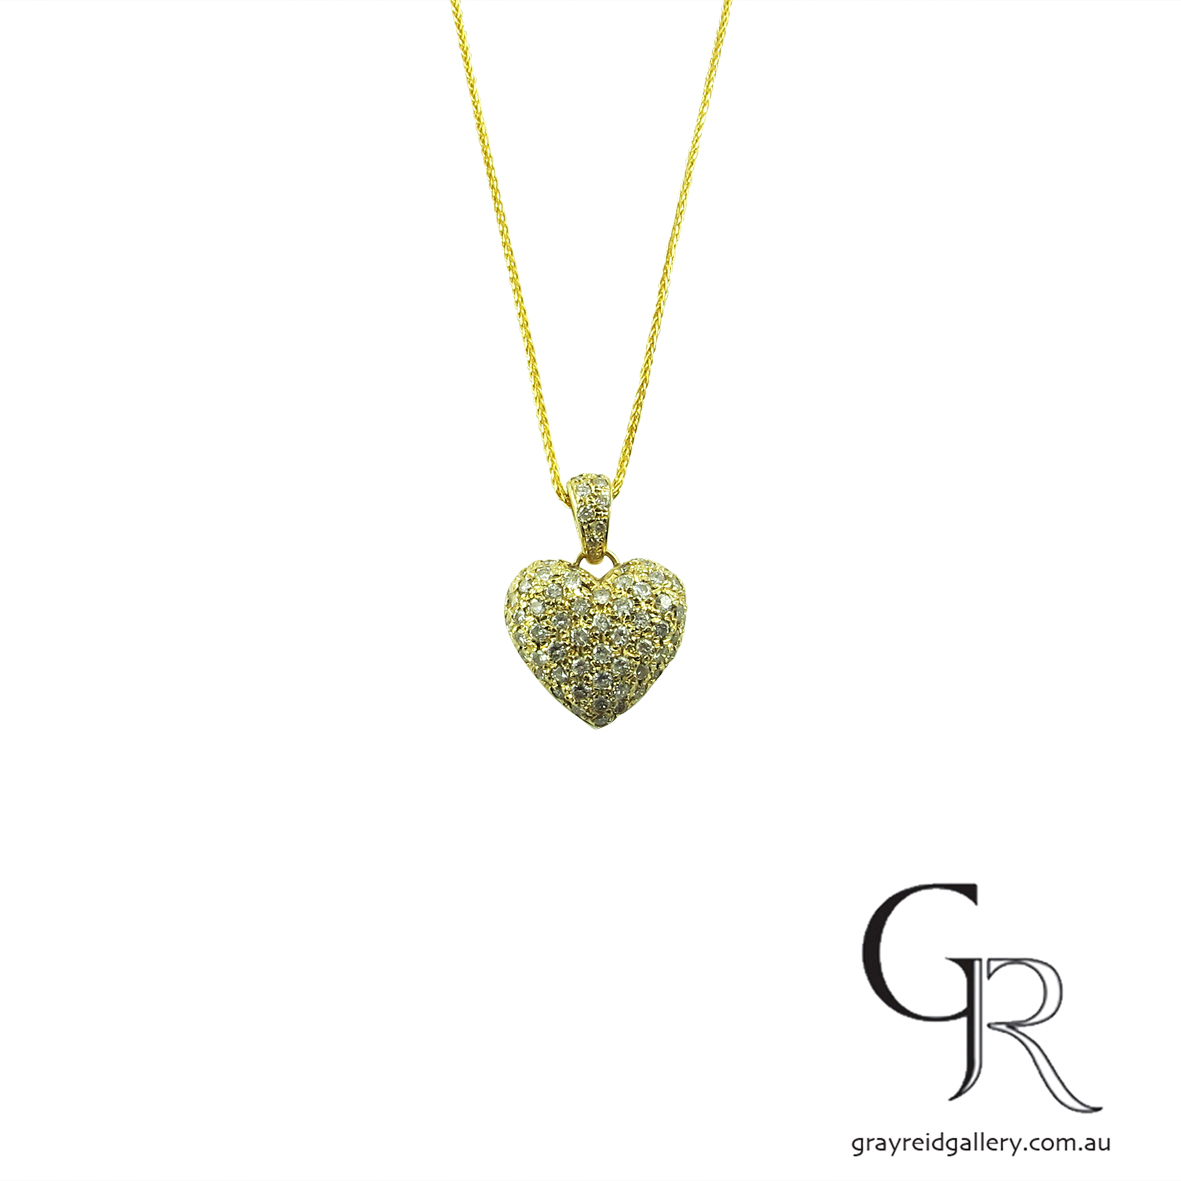 diamond set heart pendant melbourne gray reid gallery.jpg